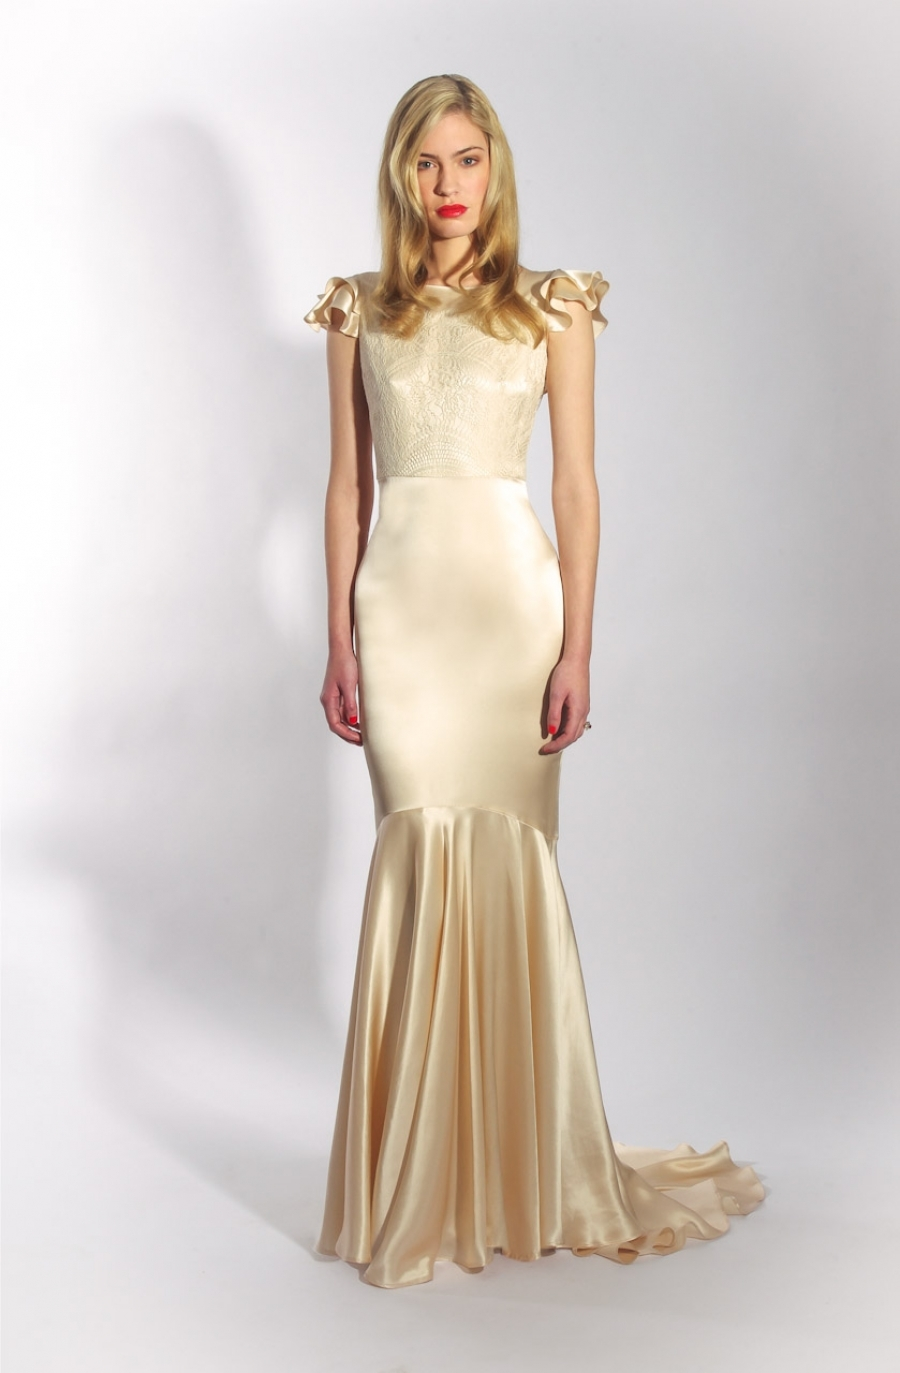 Cream vintage wedding gown with ruffle cap sleeves